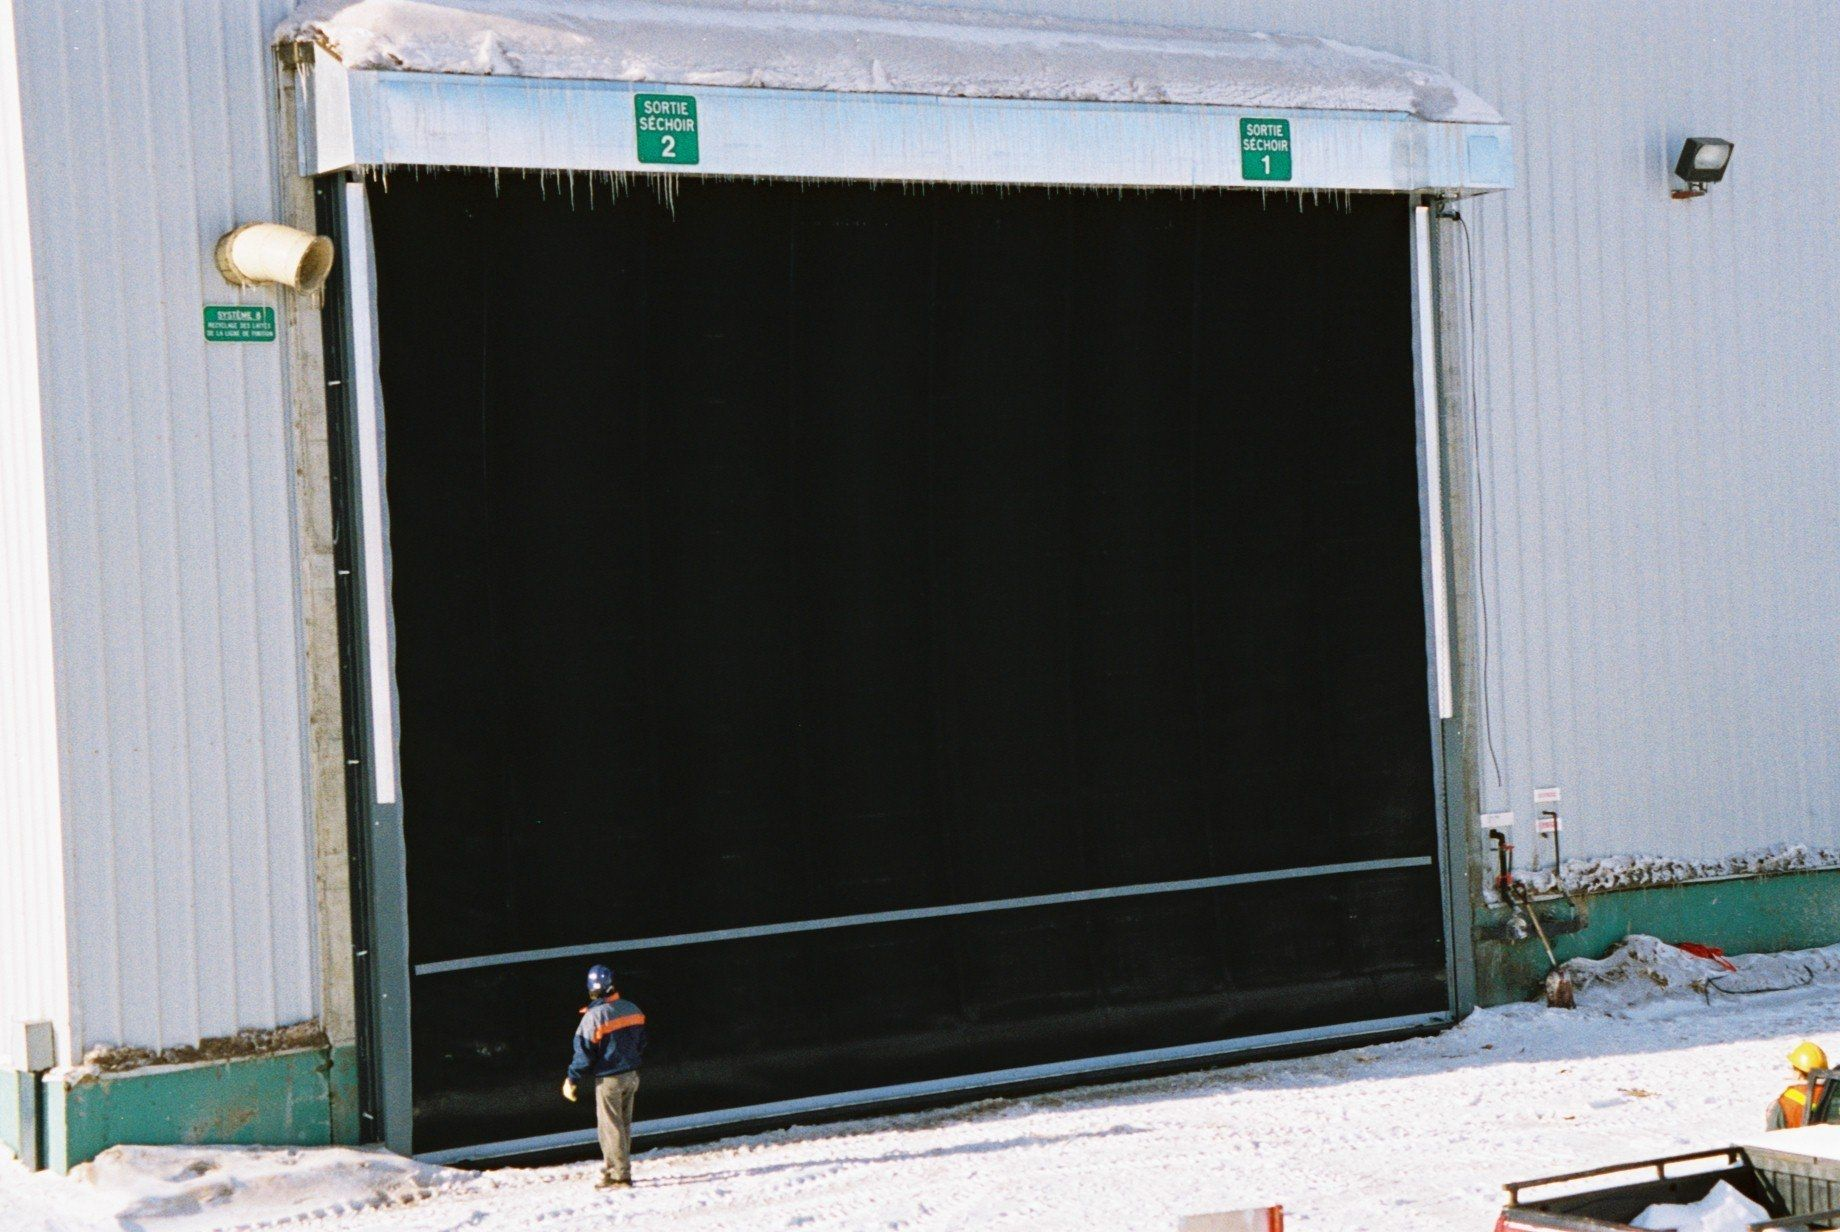 roll-up door / hangar / industrial & Roll-up door / hangar / industrial - TNR Industrial Doors - Videos